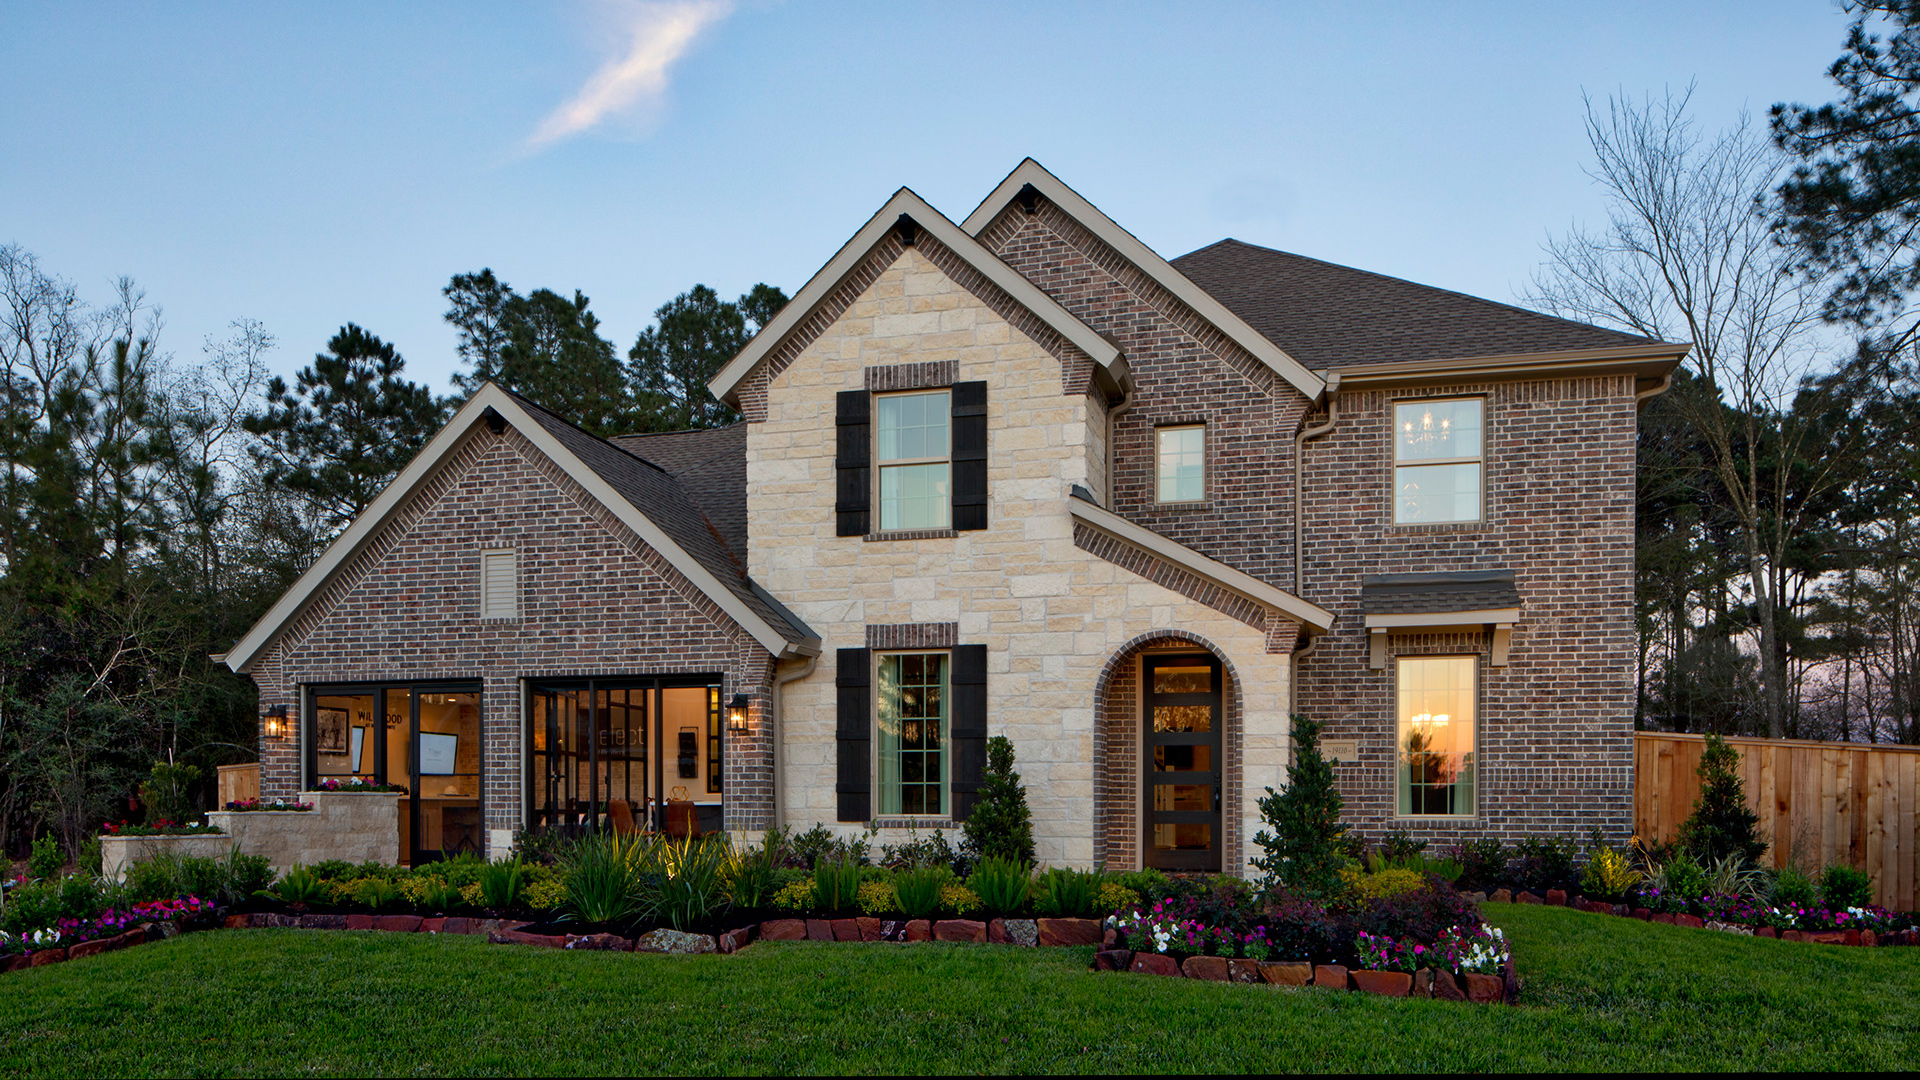 The Howell Home Design